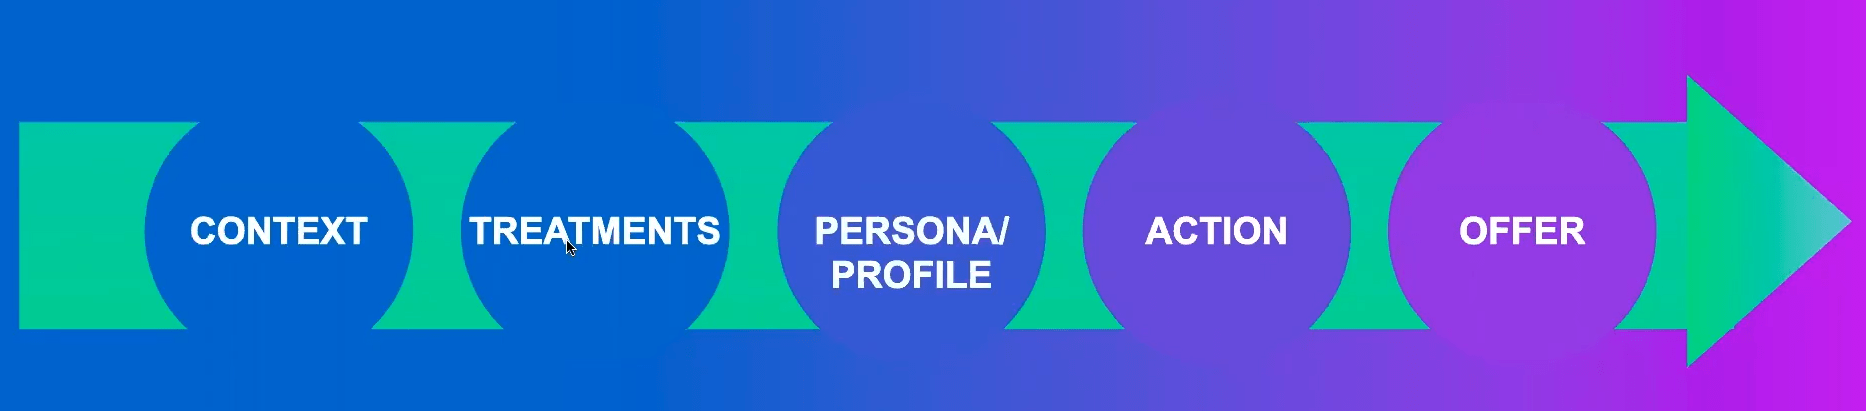 Personalization at Scale | Digital Velocity Conference